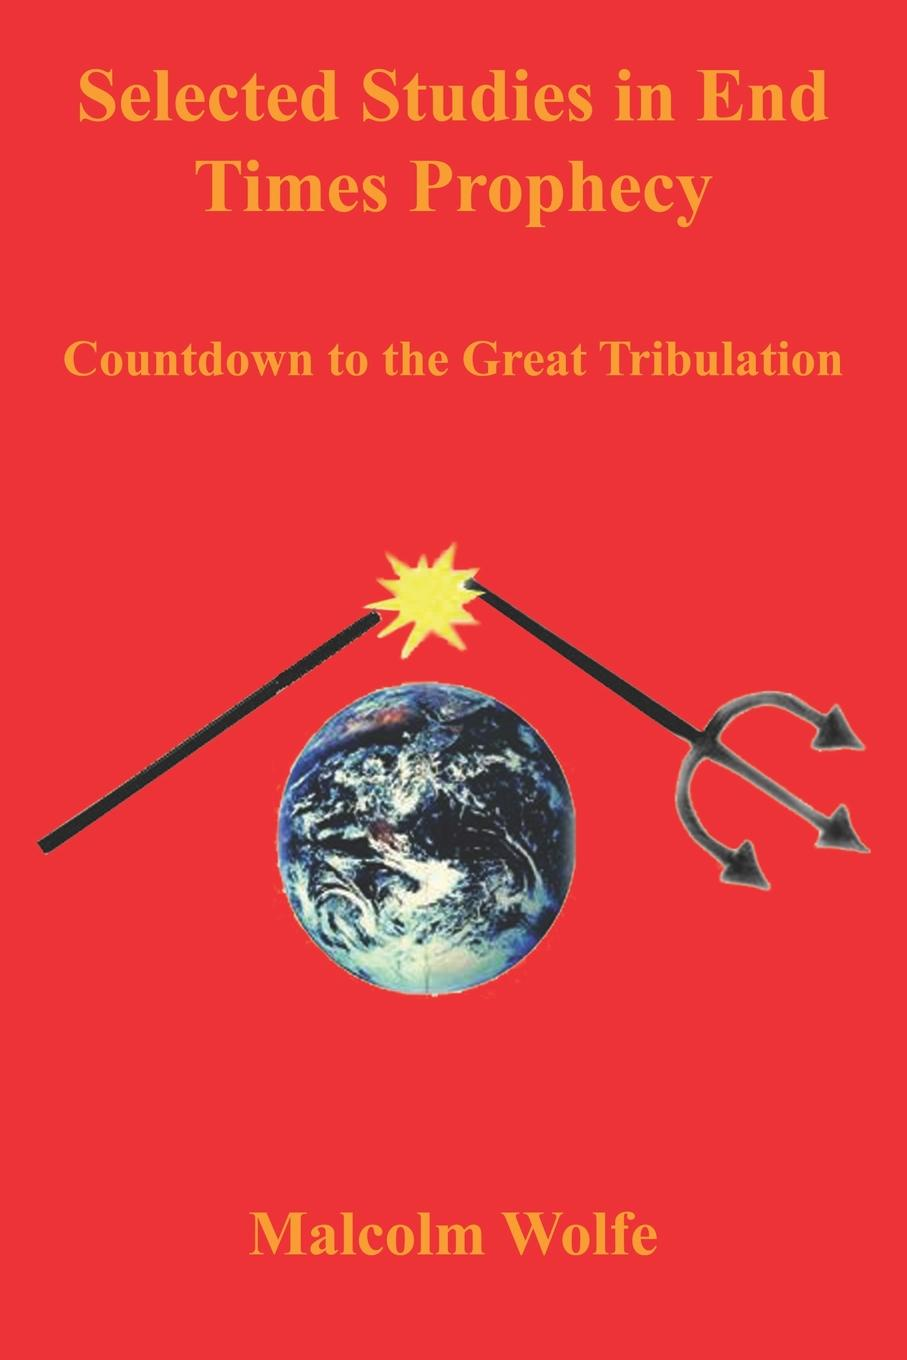 Malcolm Wolfe Selected Studies in End Times Prophecy. Countdown to the Great Tribulation the end times